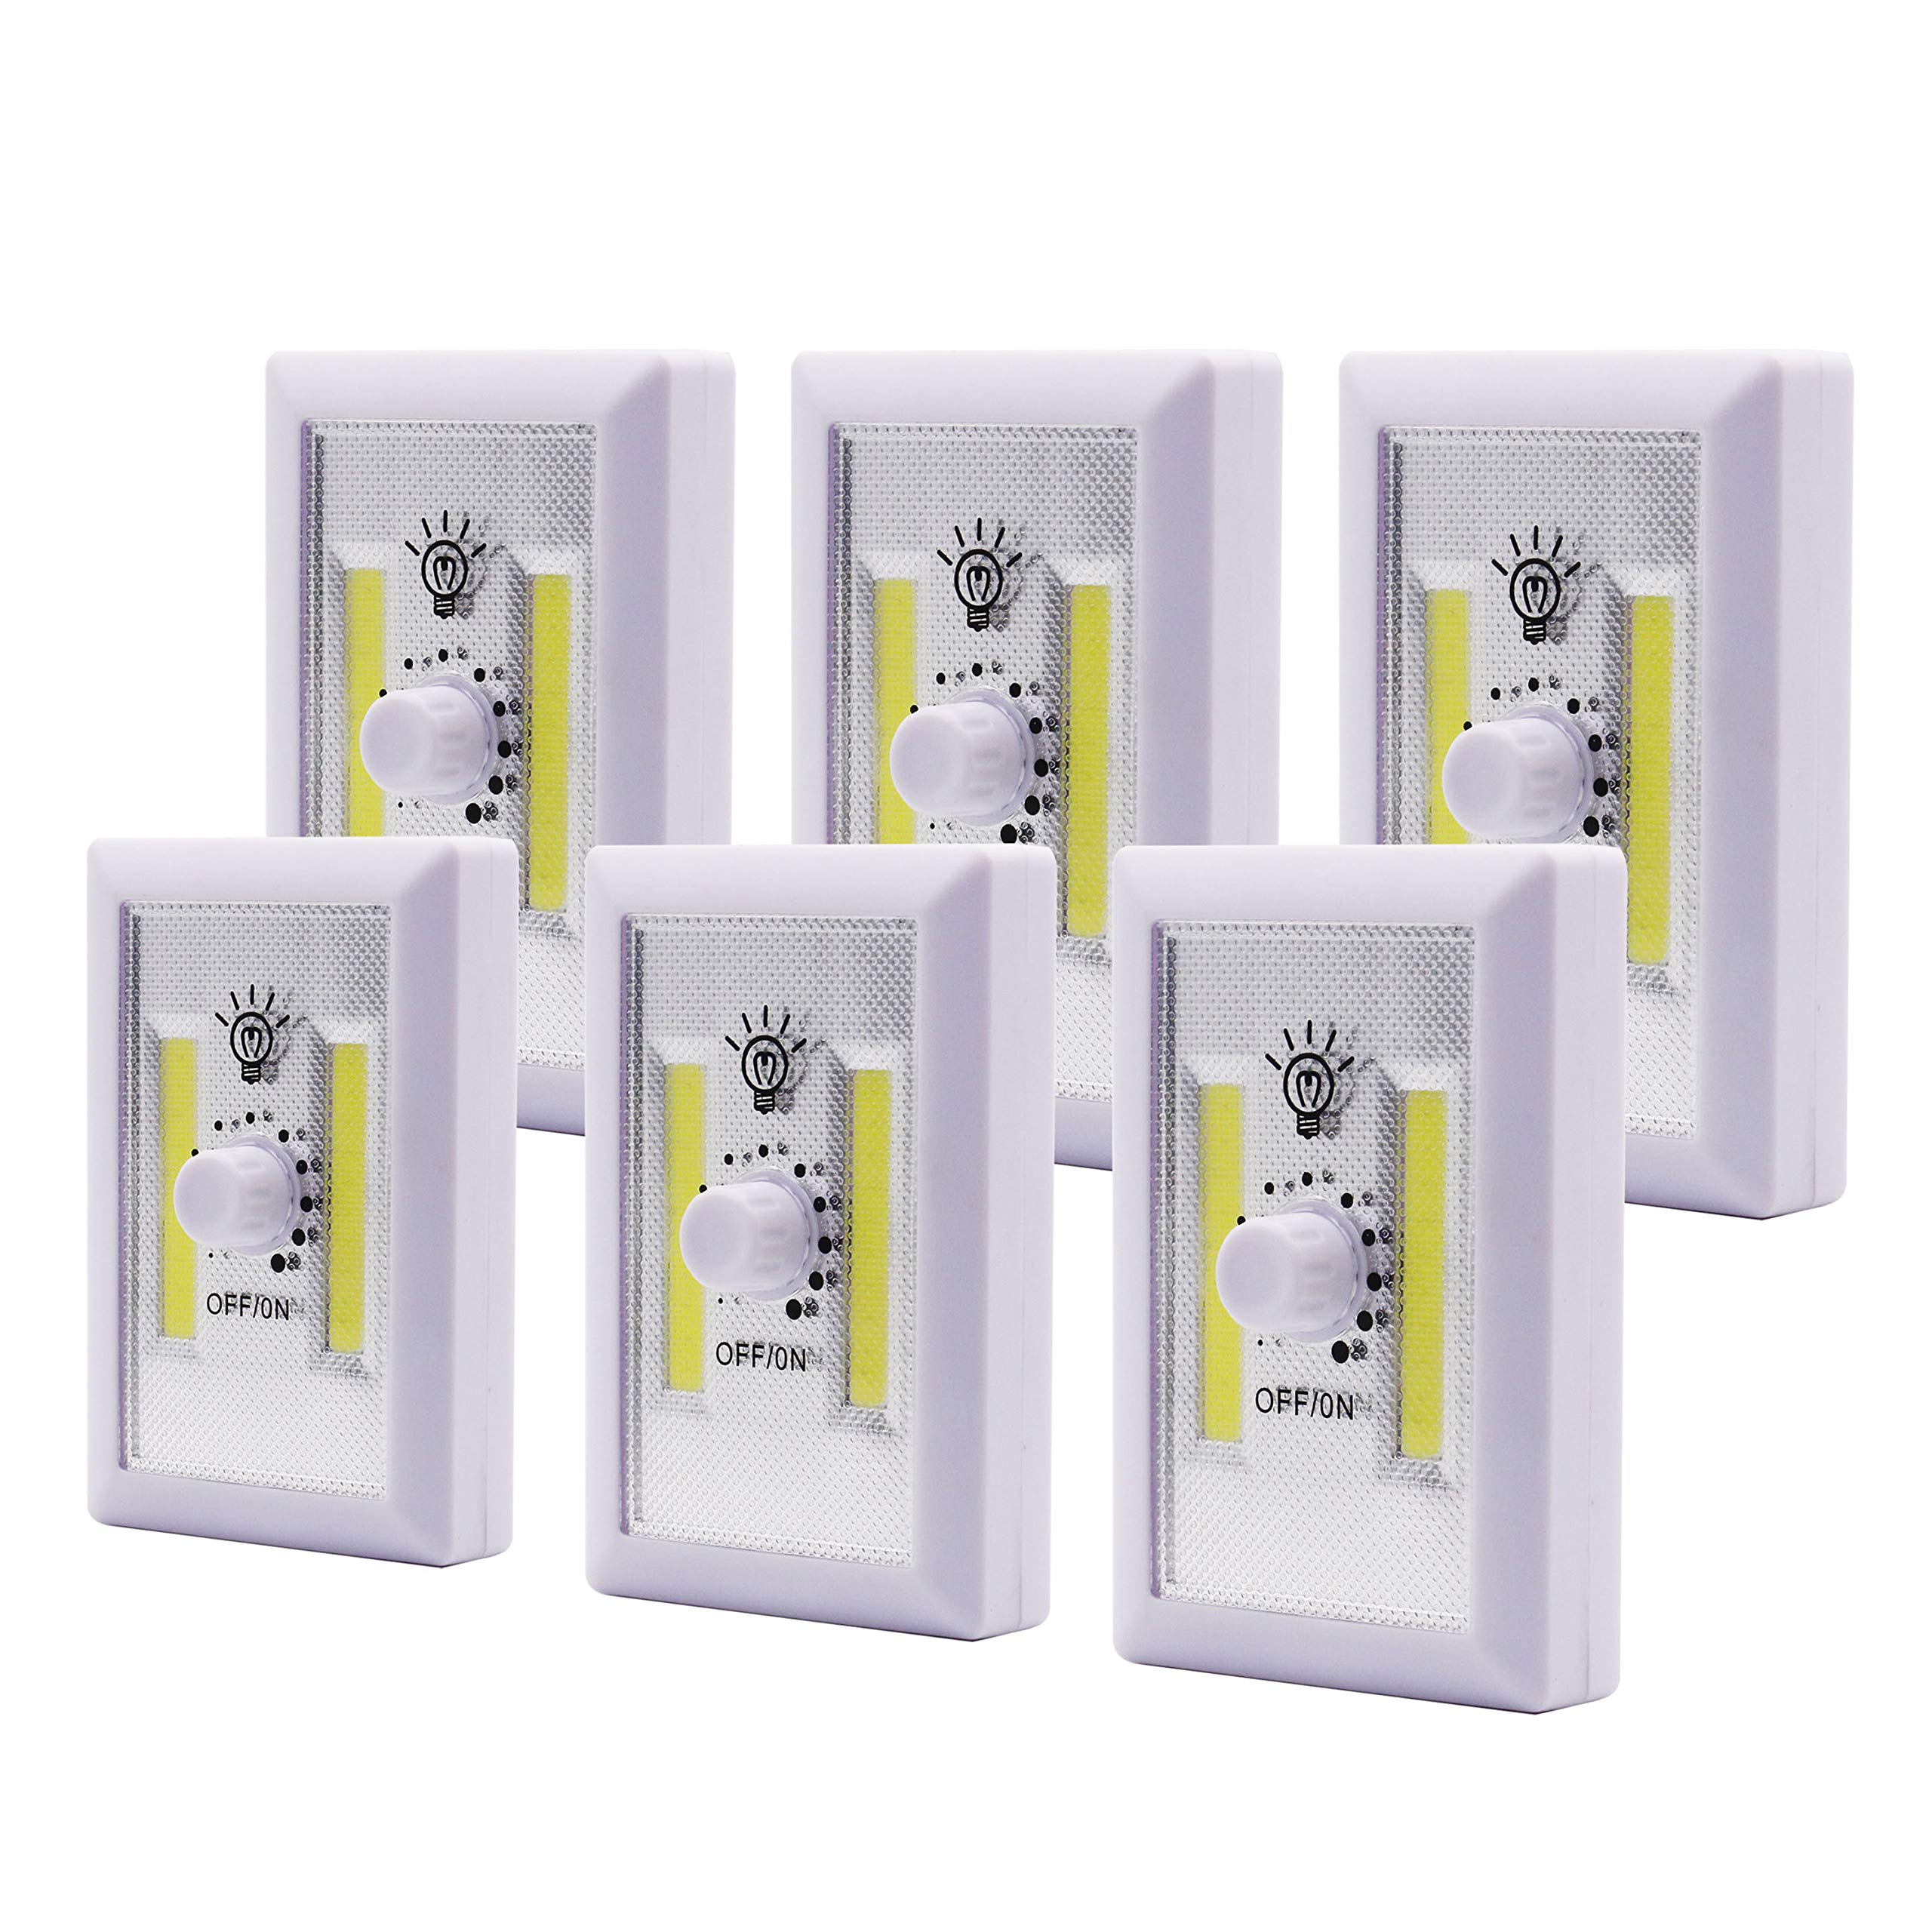 Super Bright Dimmable-Battery Operated LED Night Lights,COB LED Cordless Light Switch,Tap Light,Touch,Night,Utility,Wall Wireless Mount Under Cabinet,Shed,Kitchen,Garage,Basement and More (6 Pack)